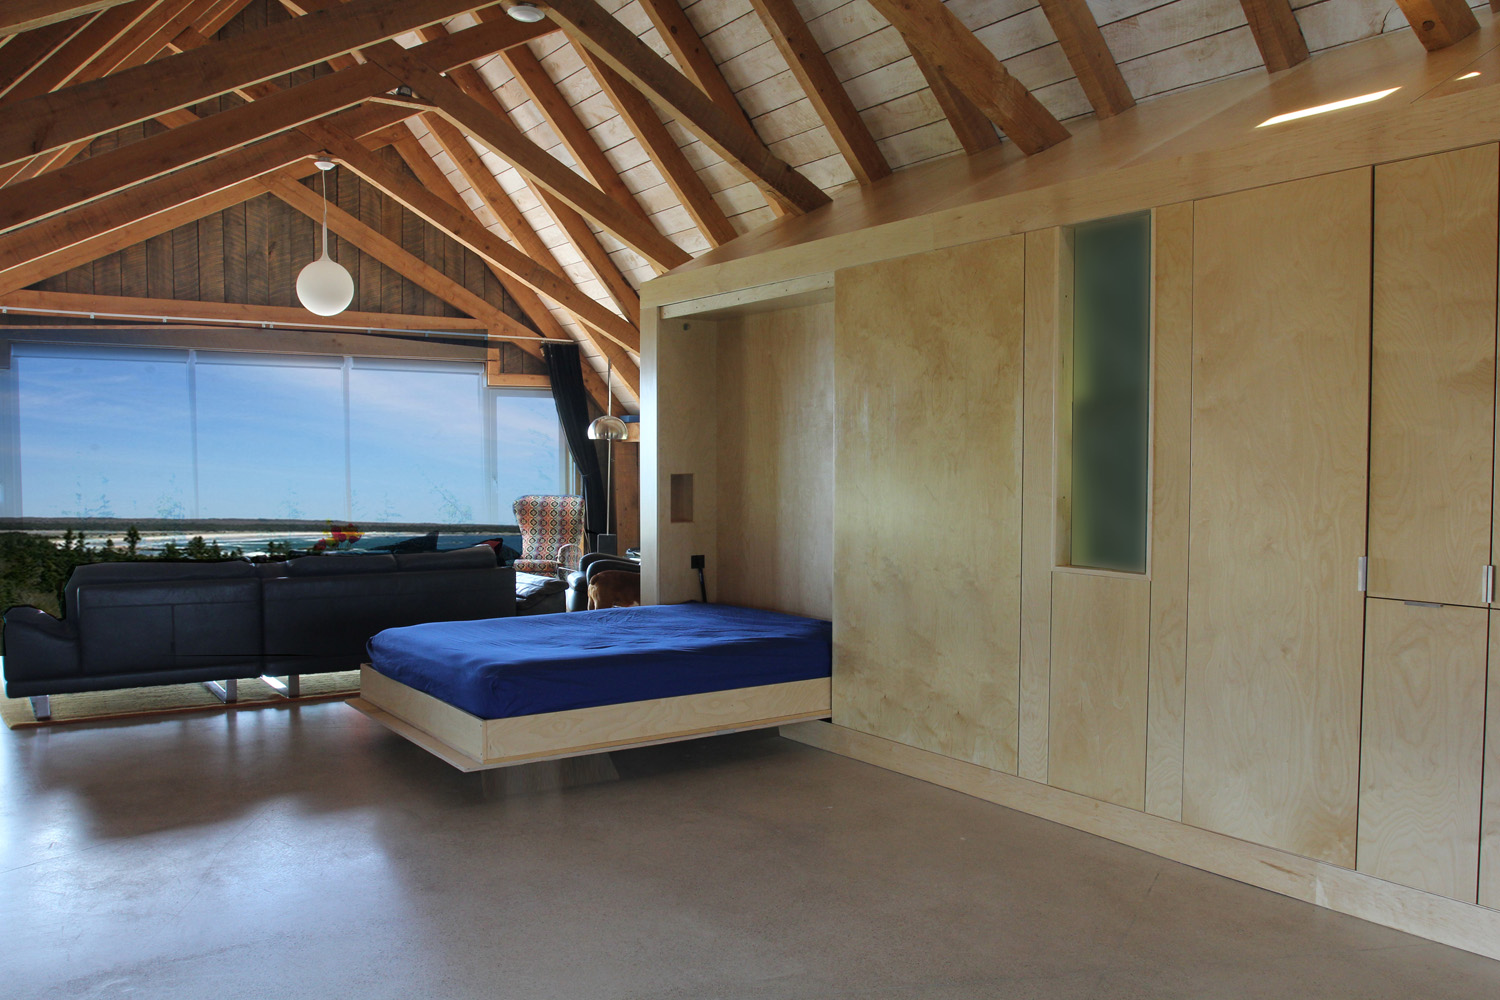 houdinidesign_ARCHITECTS_Ritchie-Gidney_Residence_Sandy-Cove_Digby_Acadian+Timber_Frame_Modern_Renovation_Hidden_Bed_02.jpg